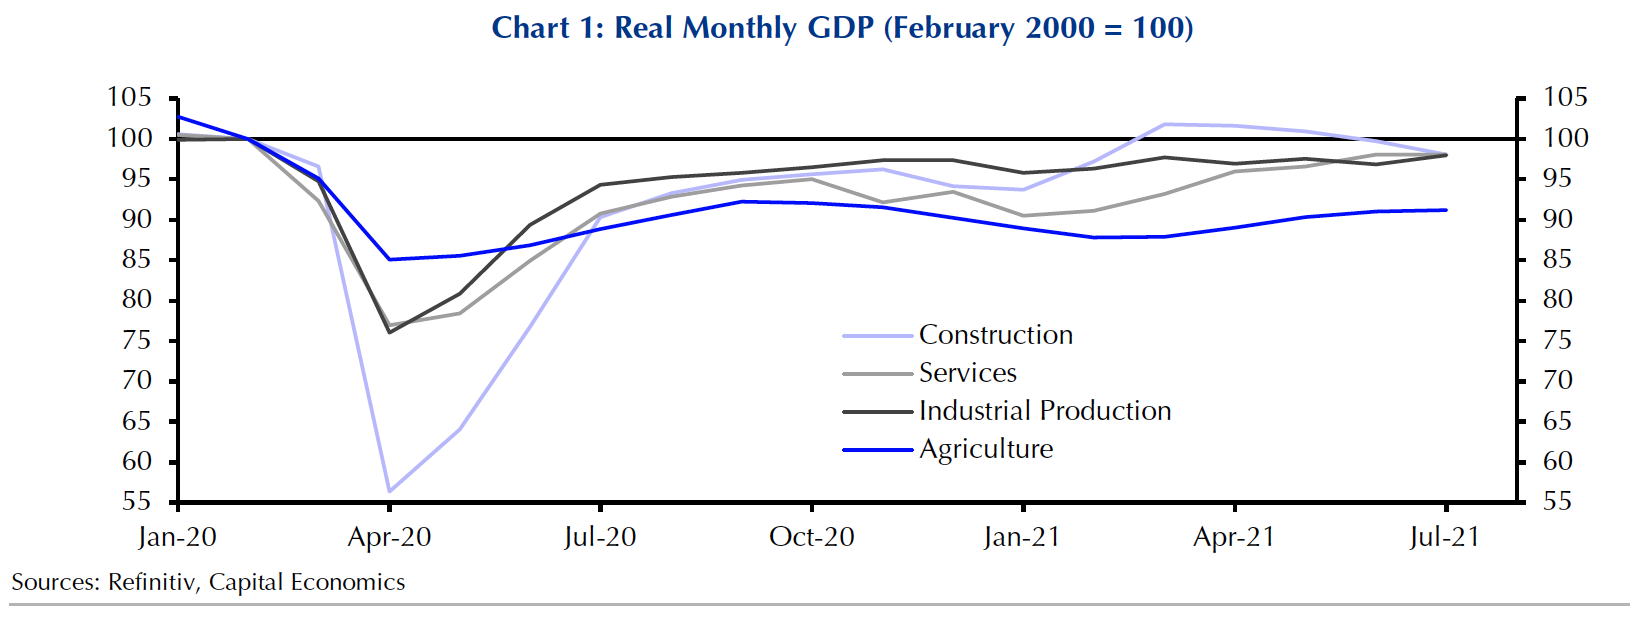 real monthly GDP